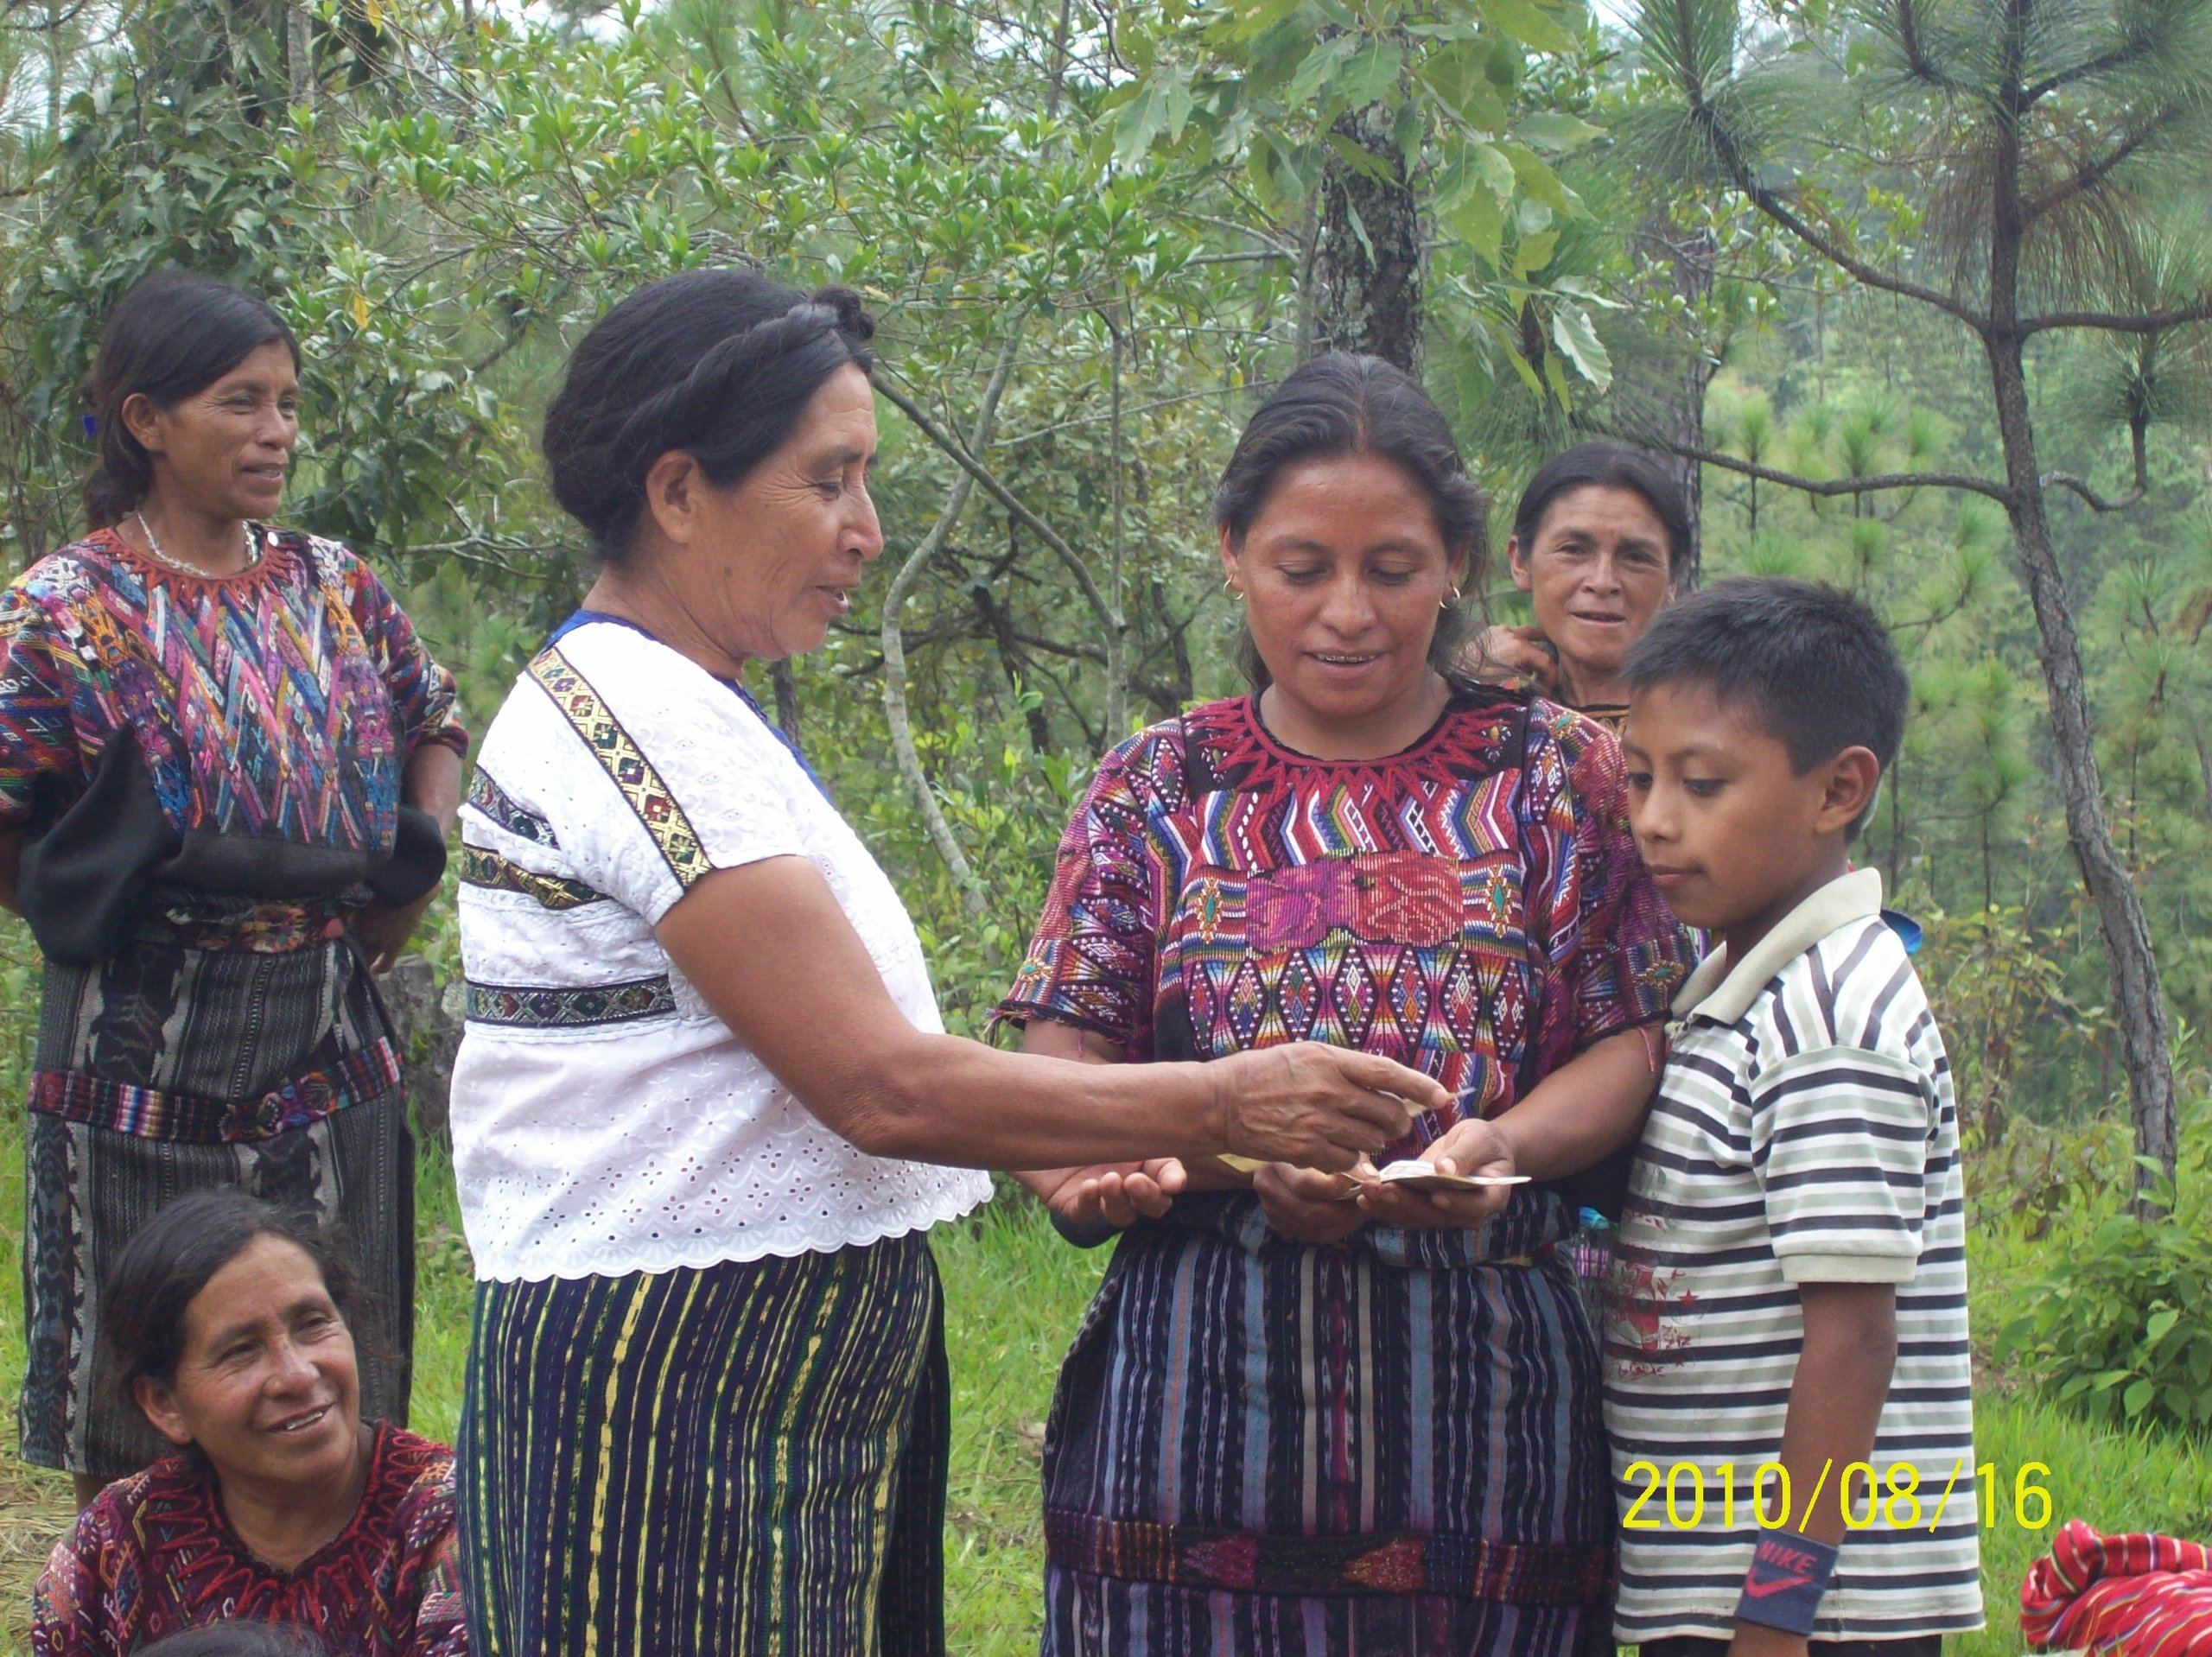 Photograph of a woman handing another woman a loan while her son looks on.